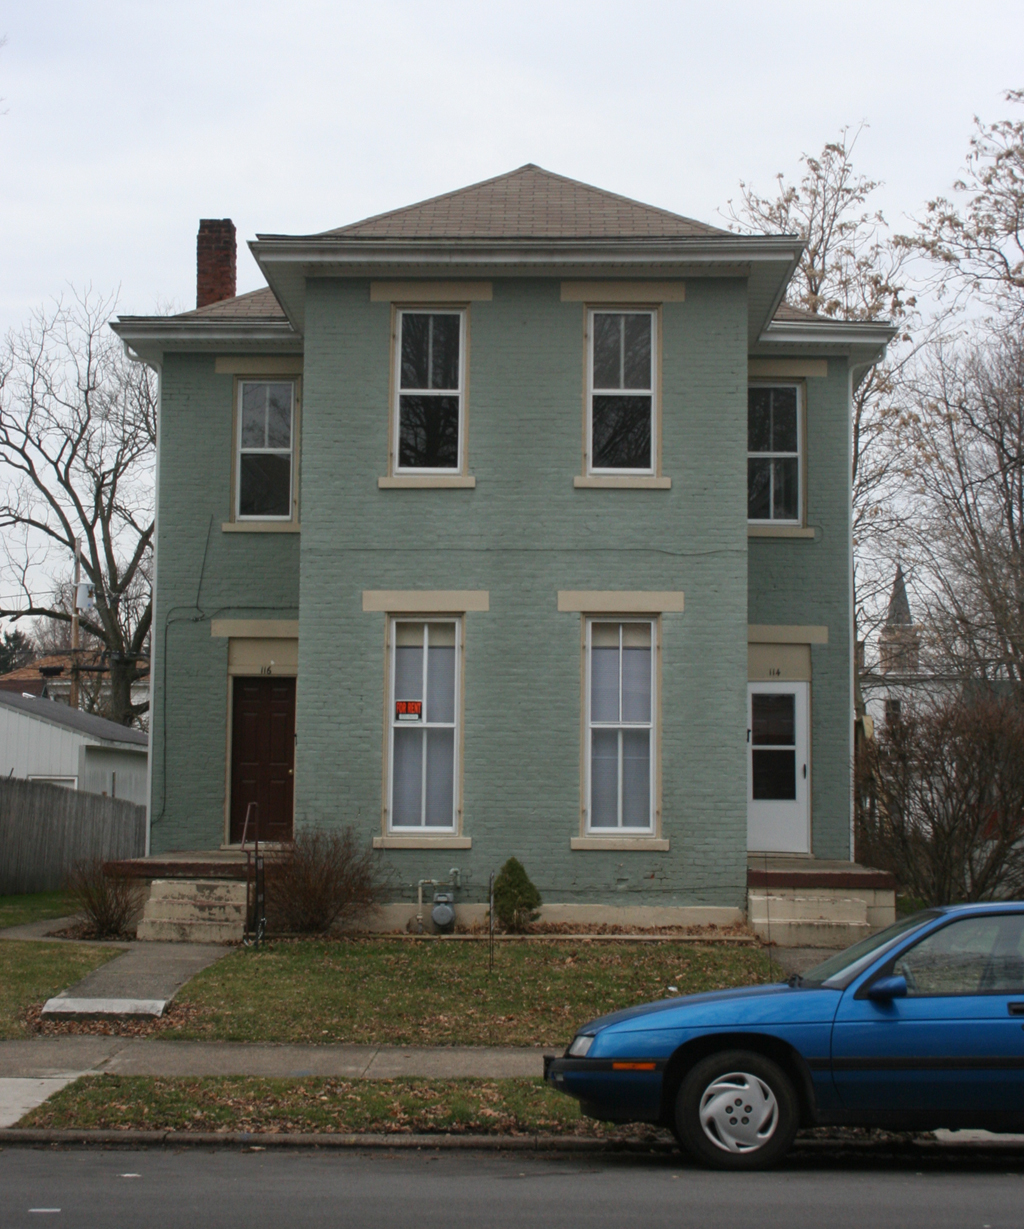 114 South 12th Street, Richmond, Indiana (2006). Photograph by Paul Shaw.